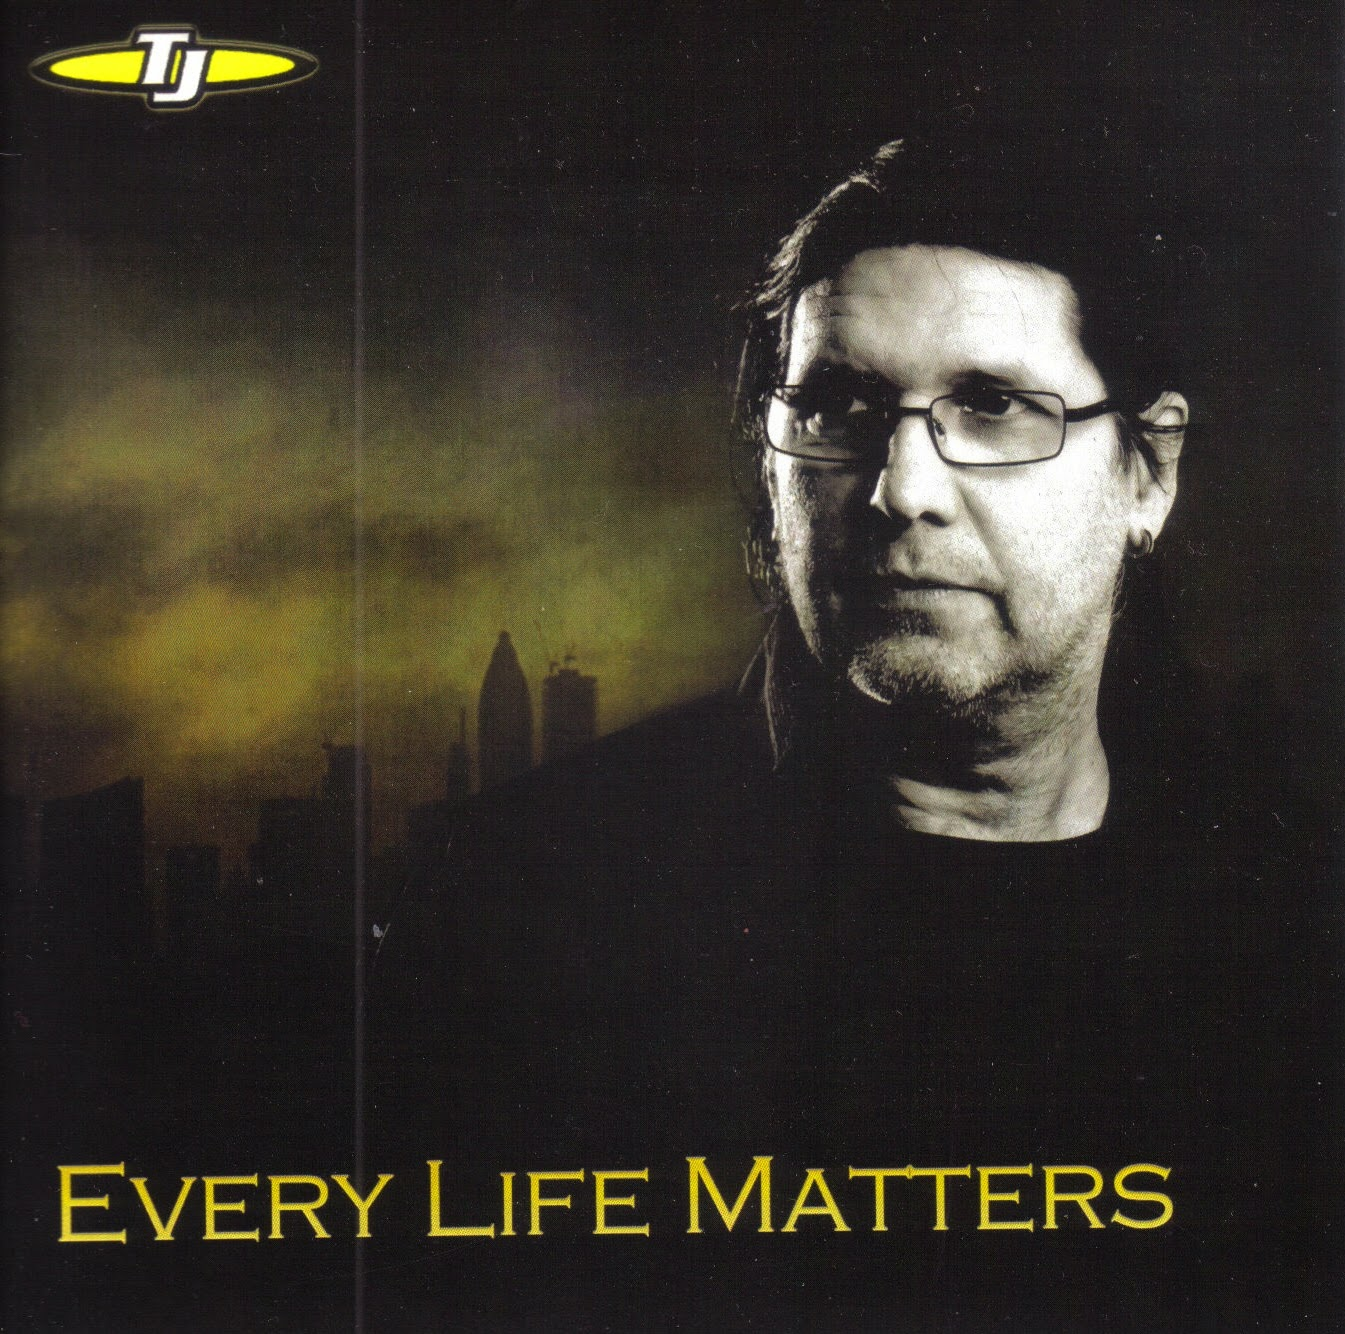 TJ - Every Life Matters